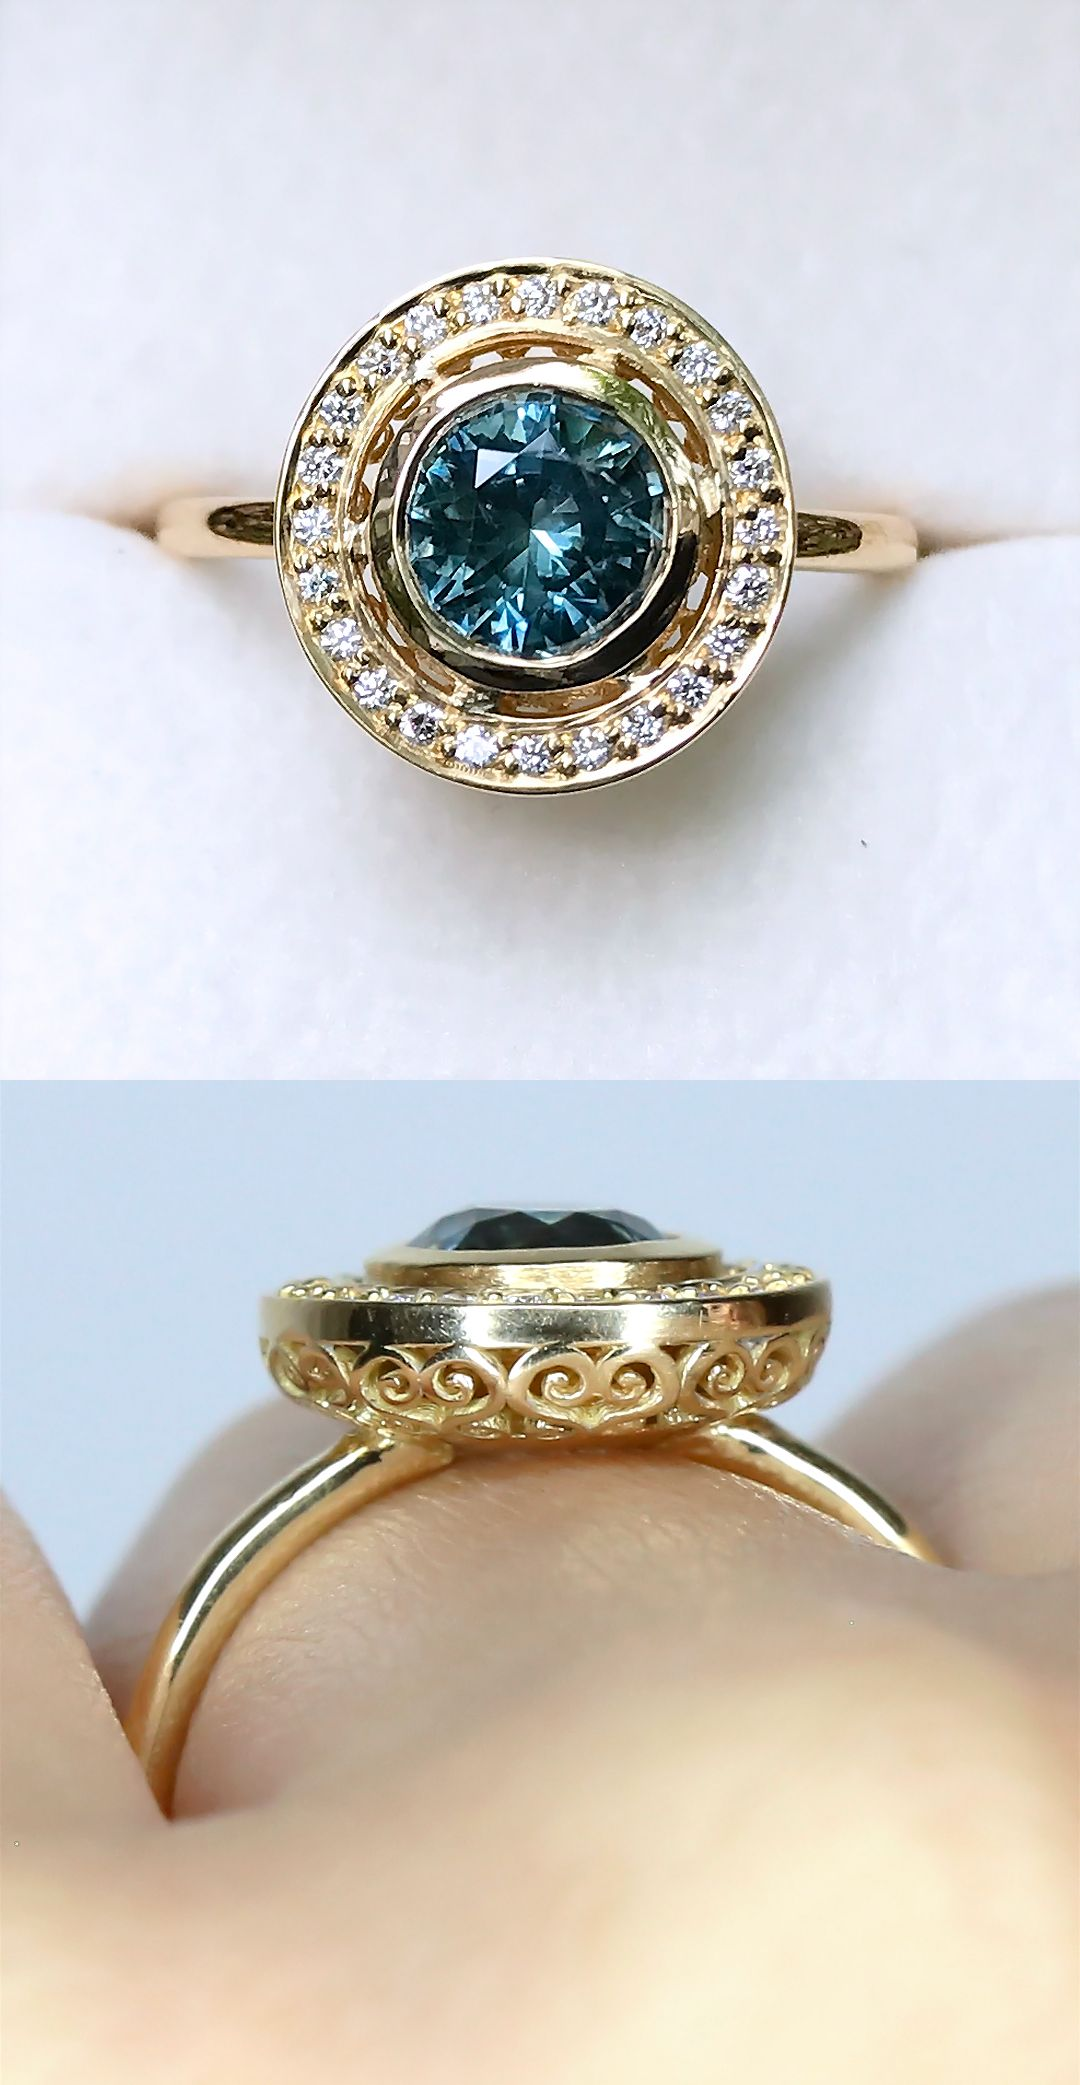 sale rings baroque ring style k triplet pin ethiopian diamond revival renaissance engagement vertical opal